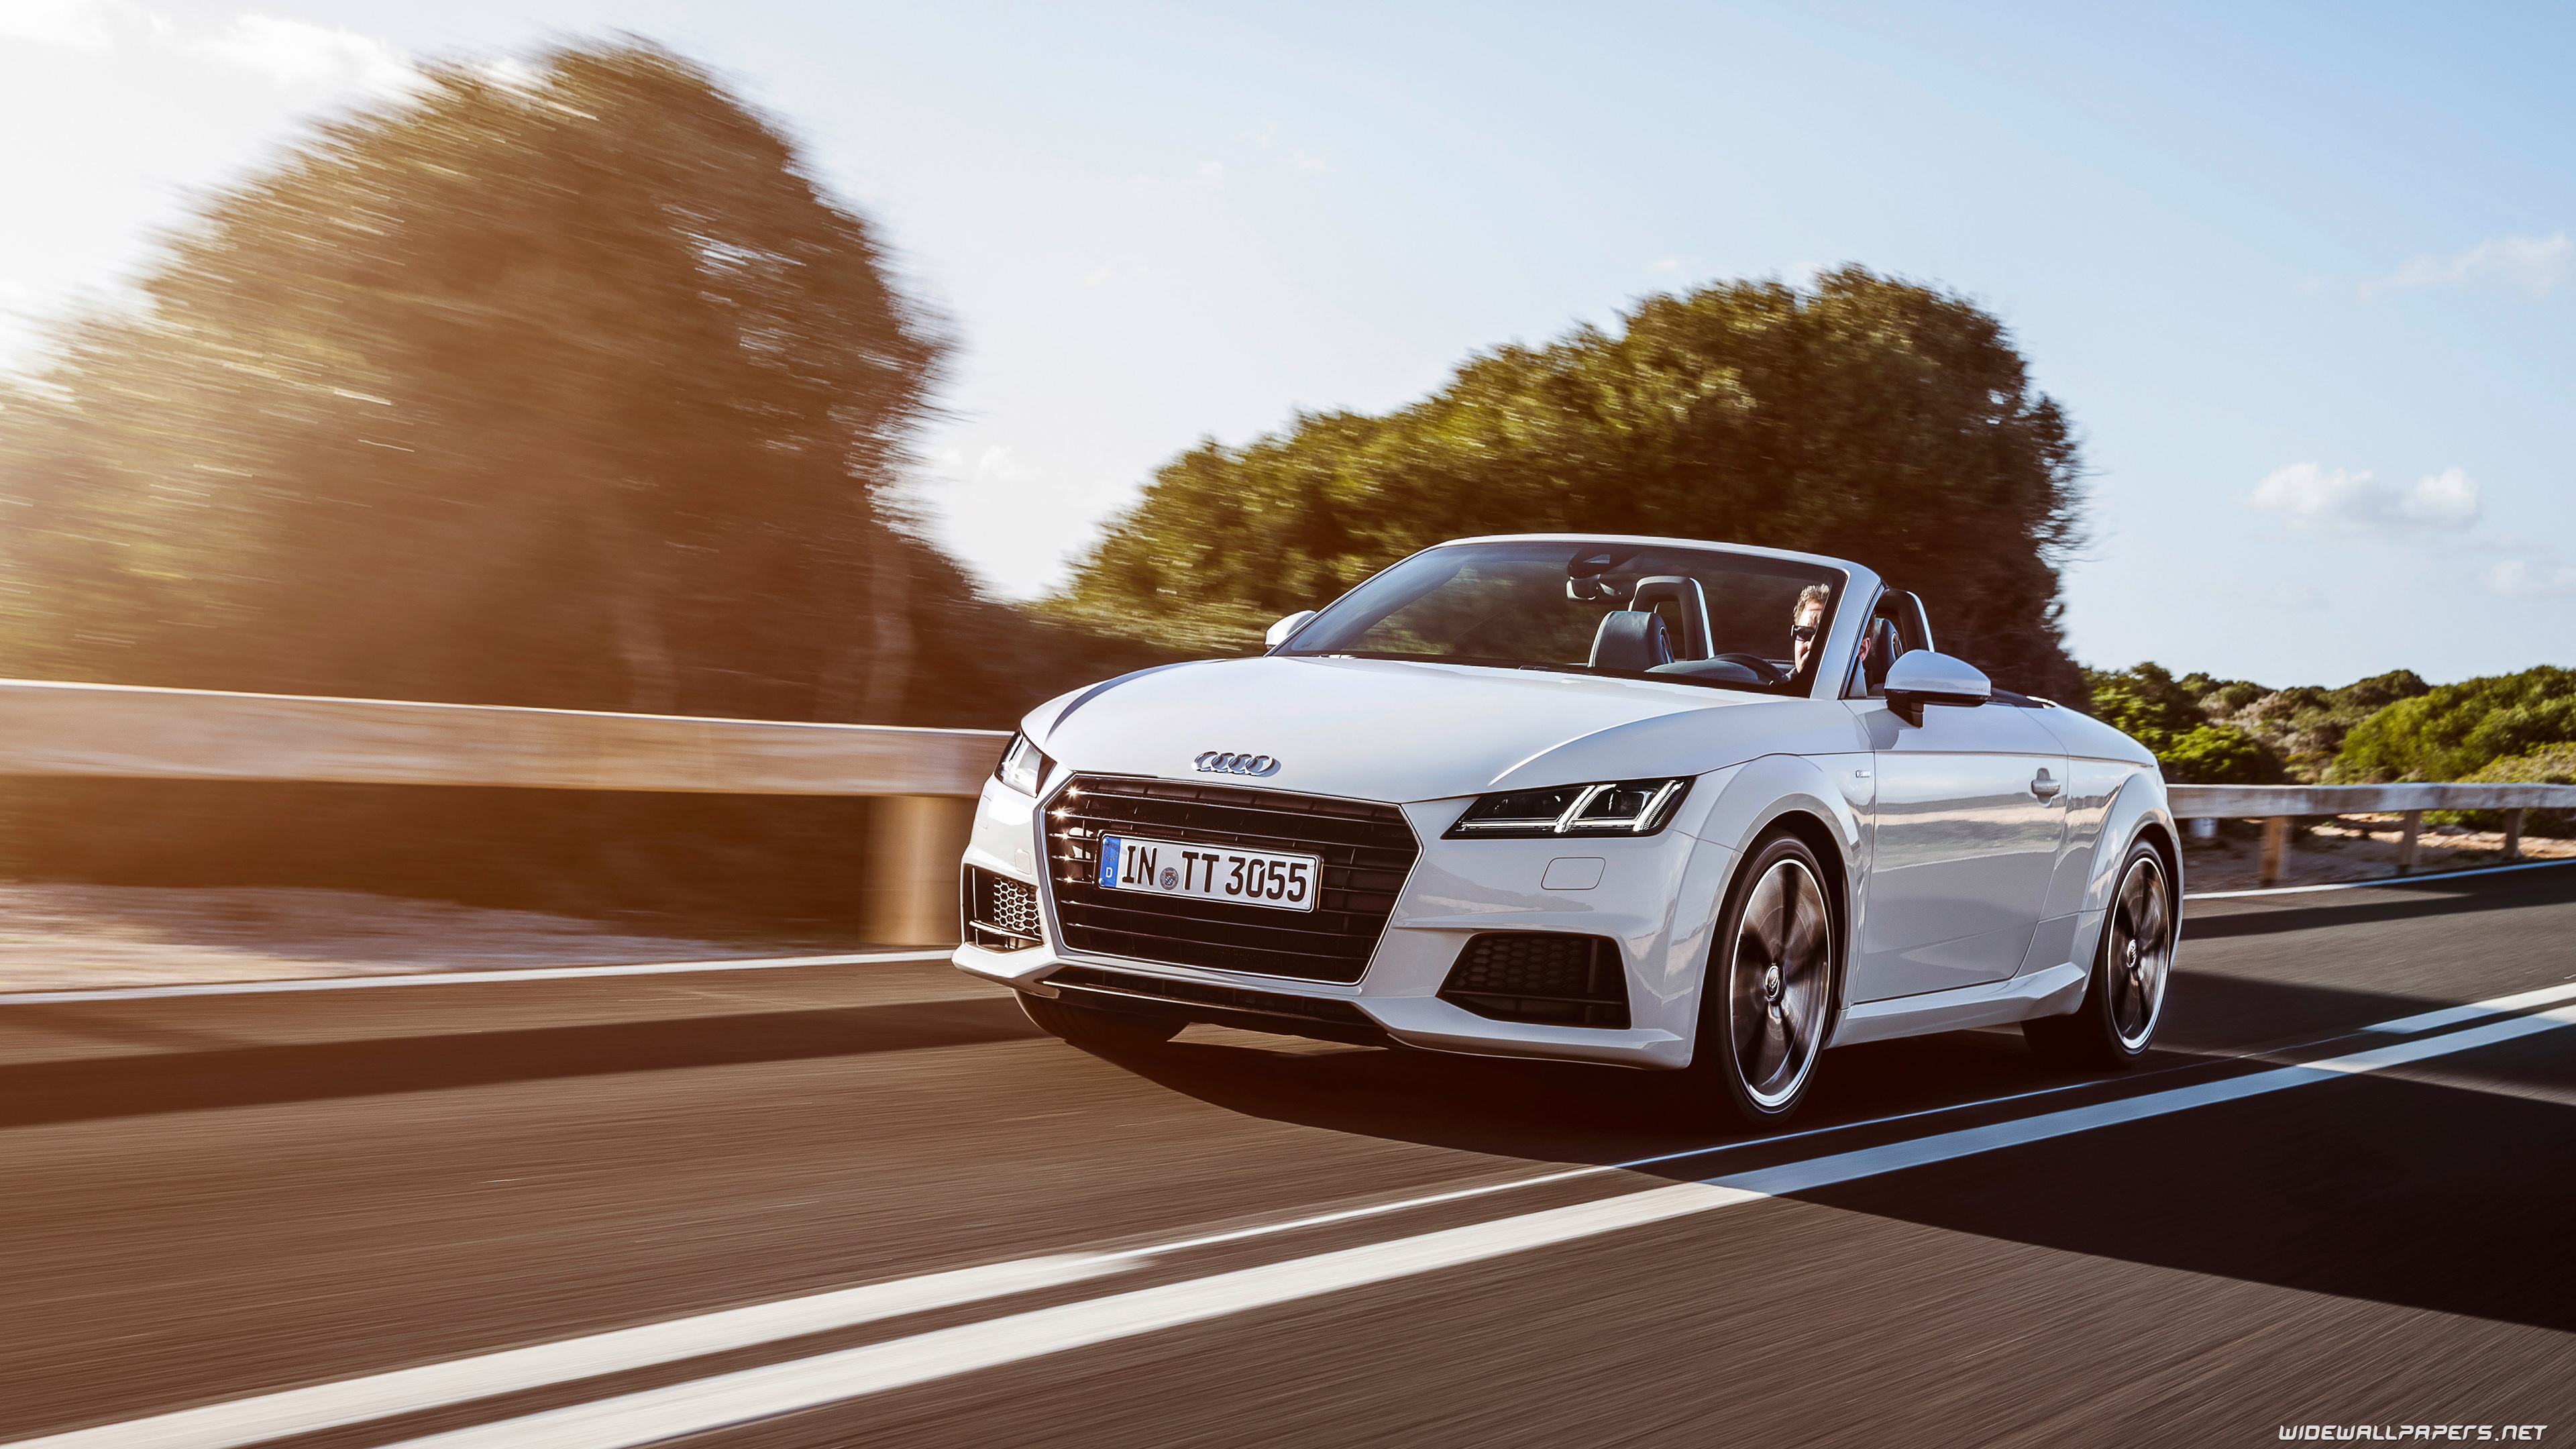 Audi Tt Cars Desktop Wallpaperttk Ultra Hd